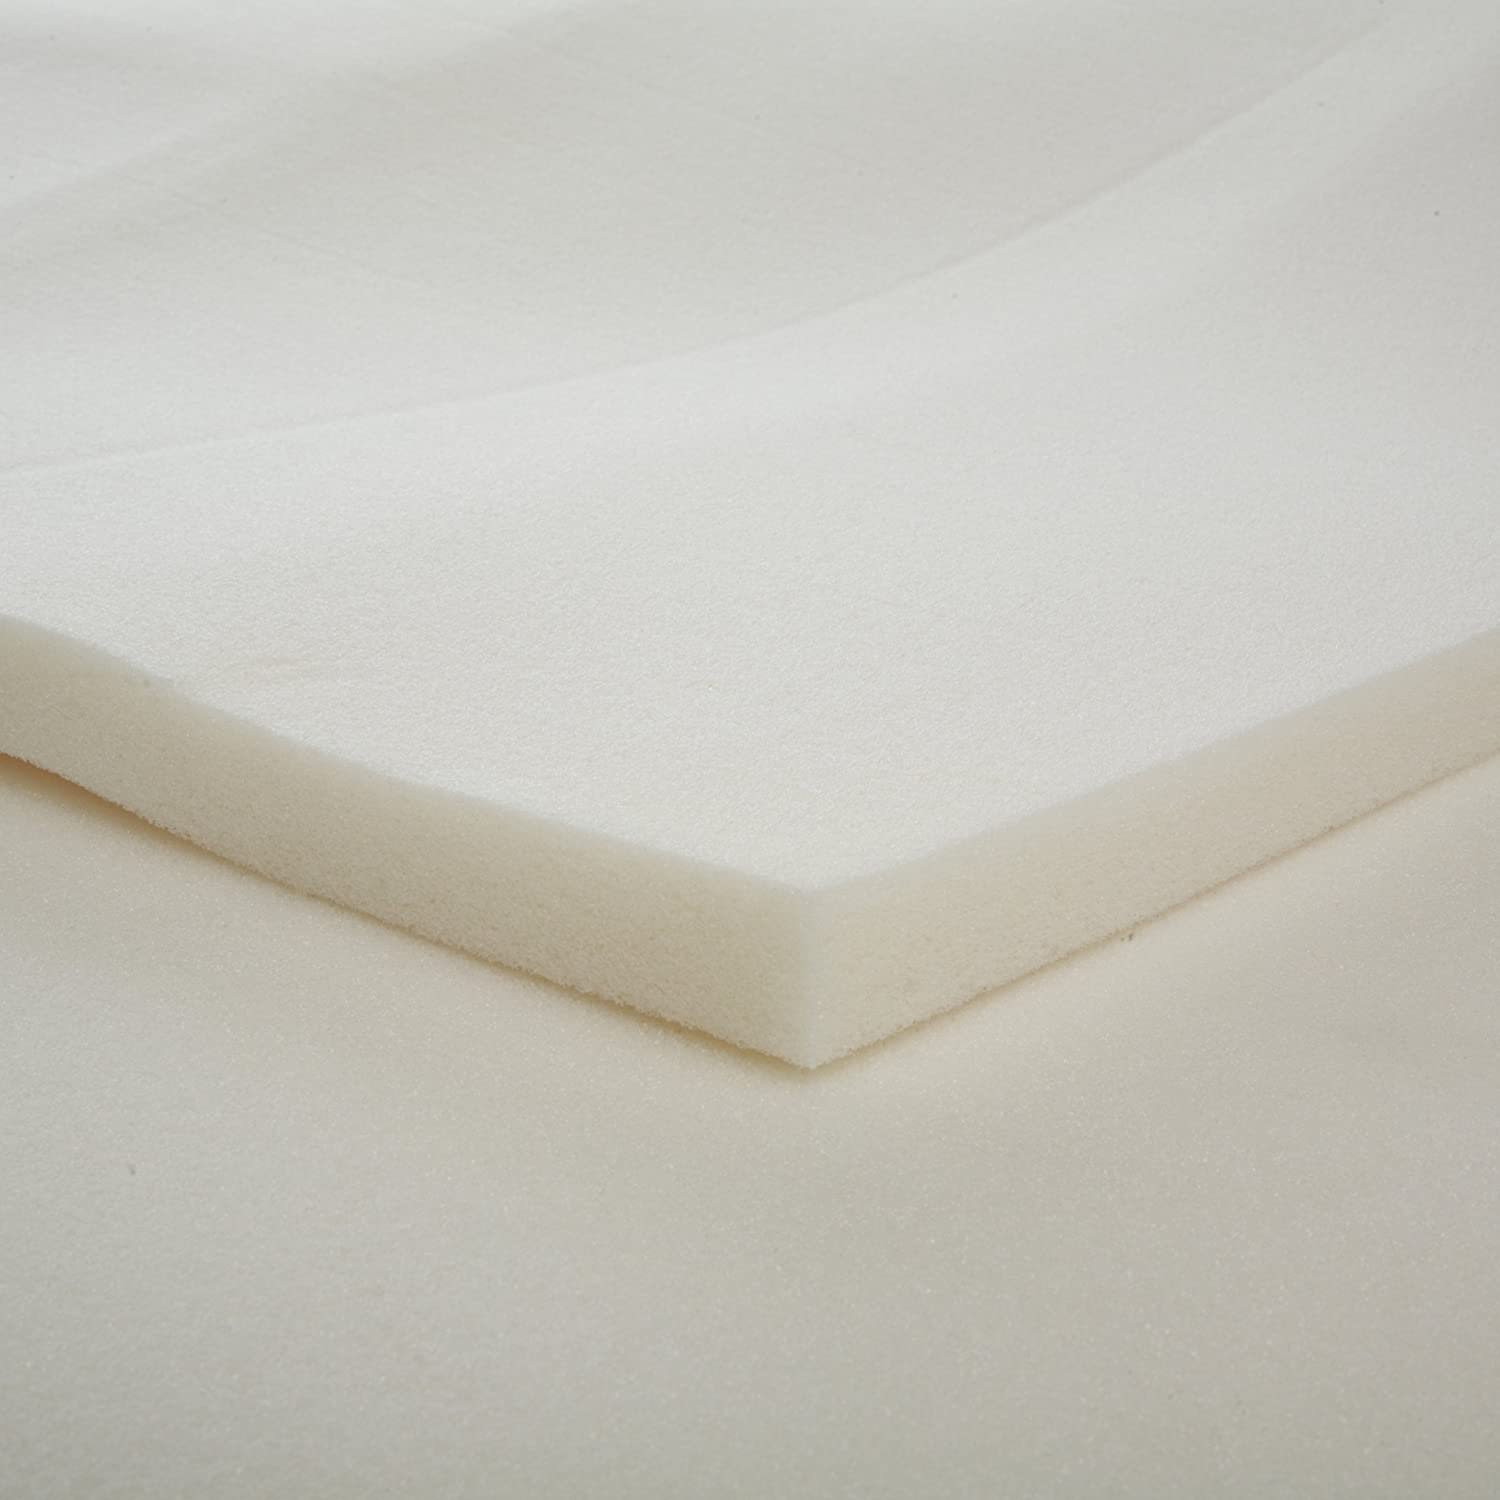 Memory foam bed bedding mattress topper pad padding support comfort 1 inch thick Memory foam mattress buy